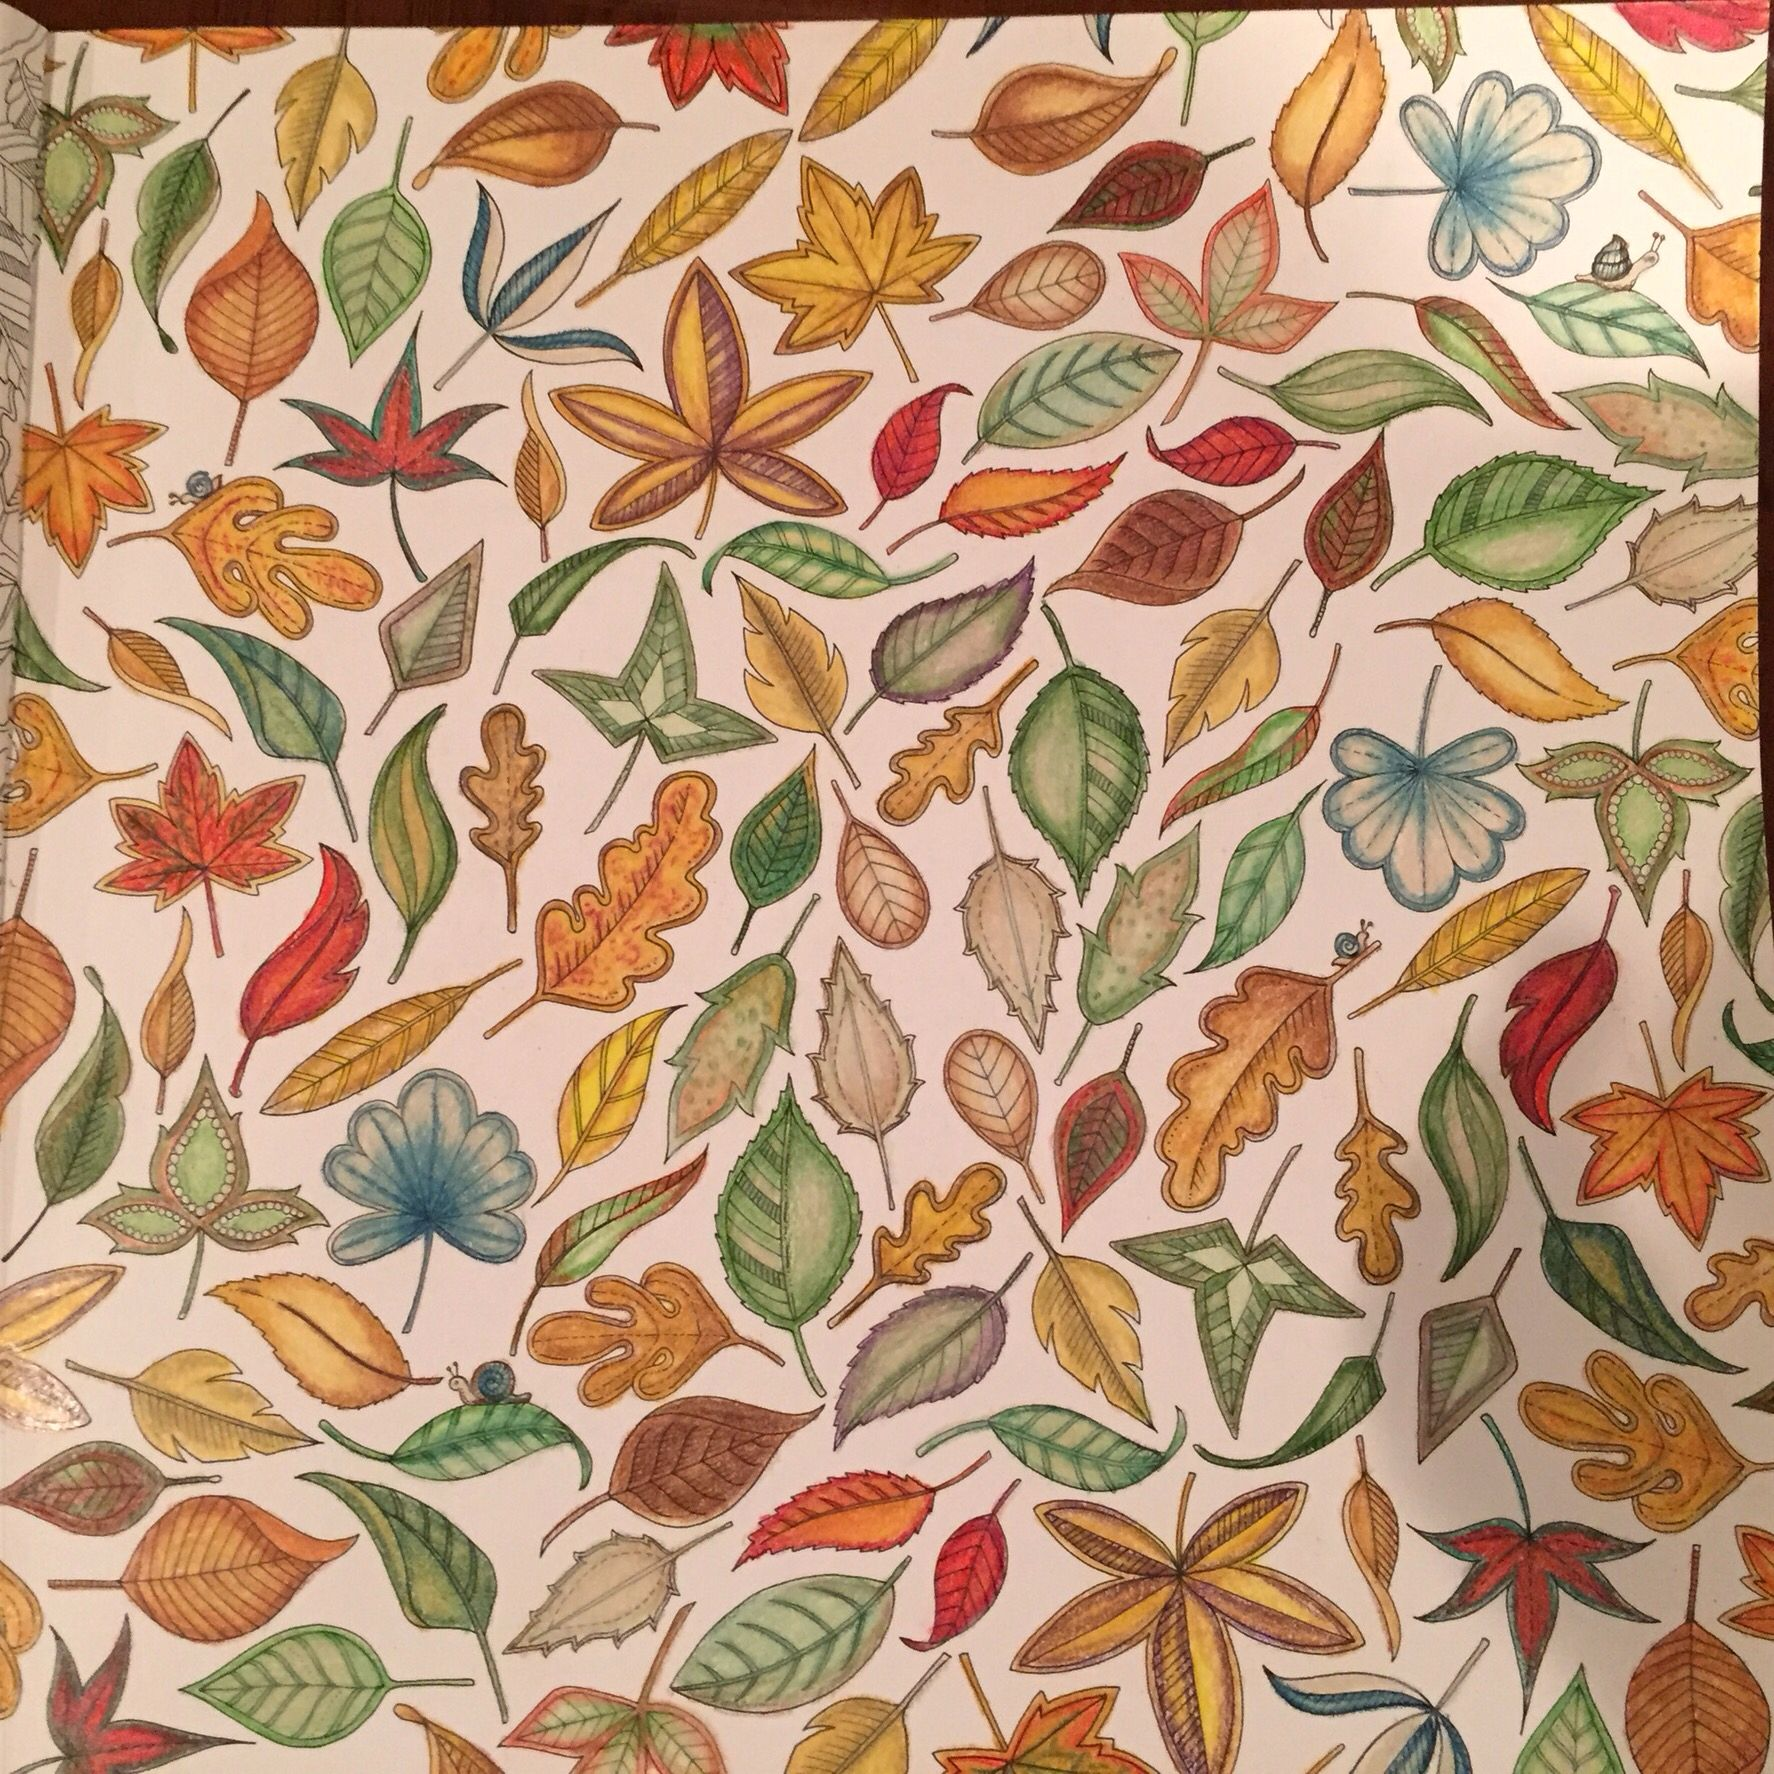 Secret Garden Coloring Book by Johanna Basford - Autumn Leaves and Snails - Colored by Suzanne Balter